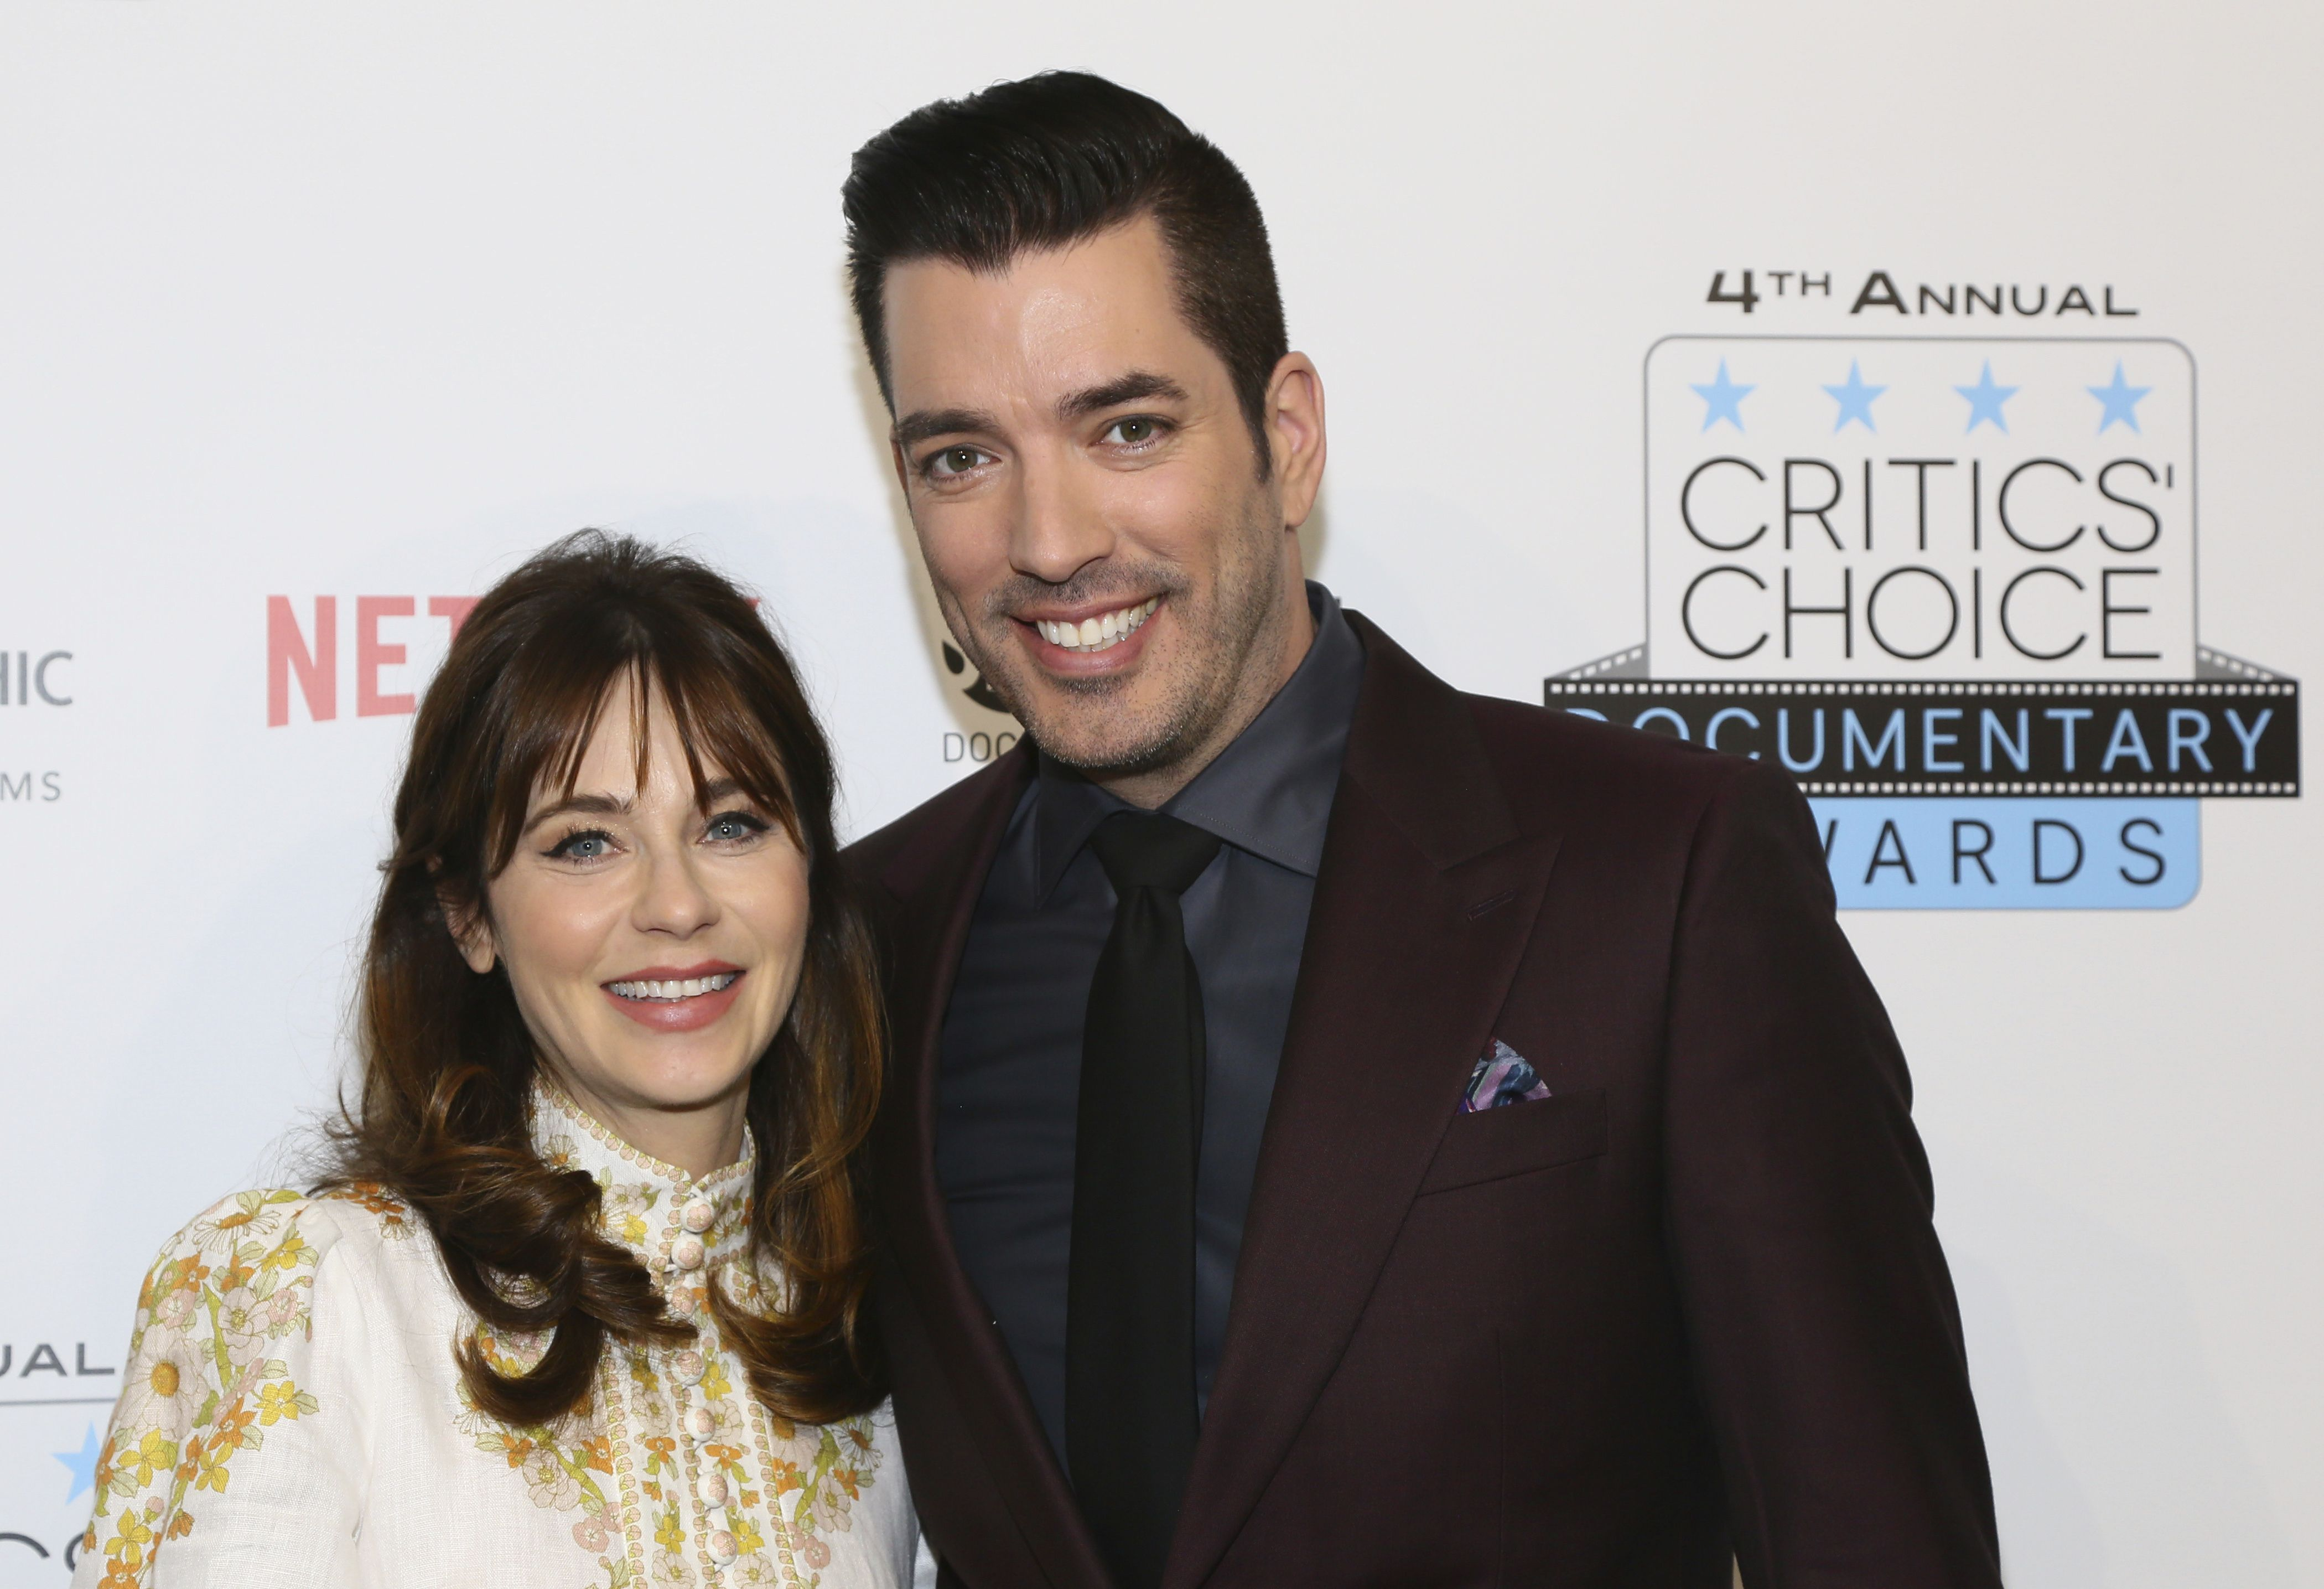 Property Brothers Star Jonathan Scott Opens Up About Amazing Relationship With Zooey Deschanel In 2020 Jonathan Scott Zooey Deschanel New Girlfriend